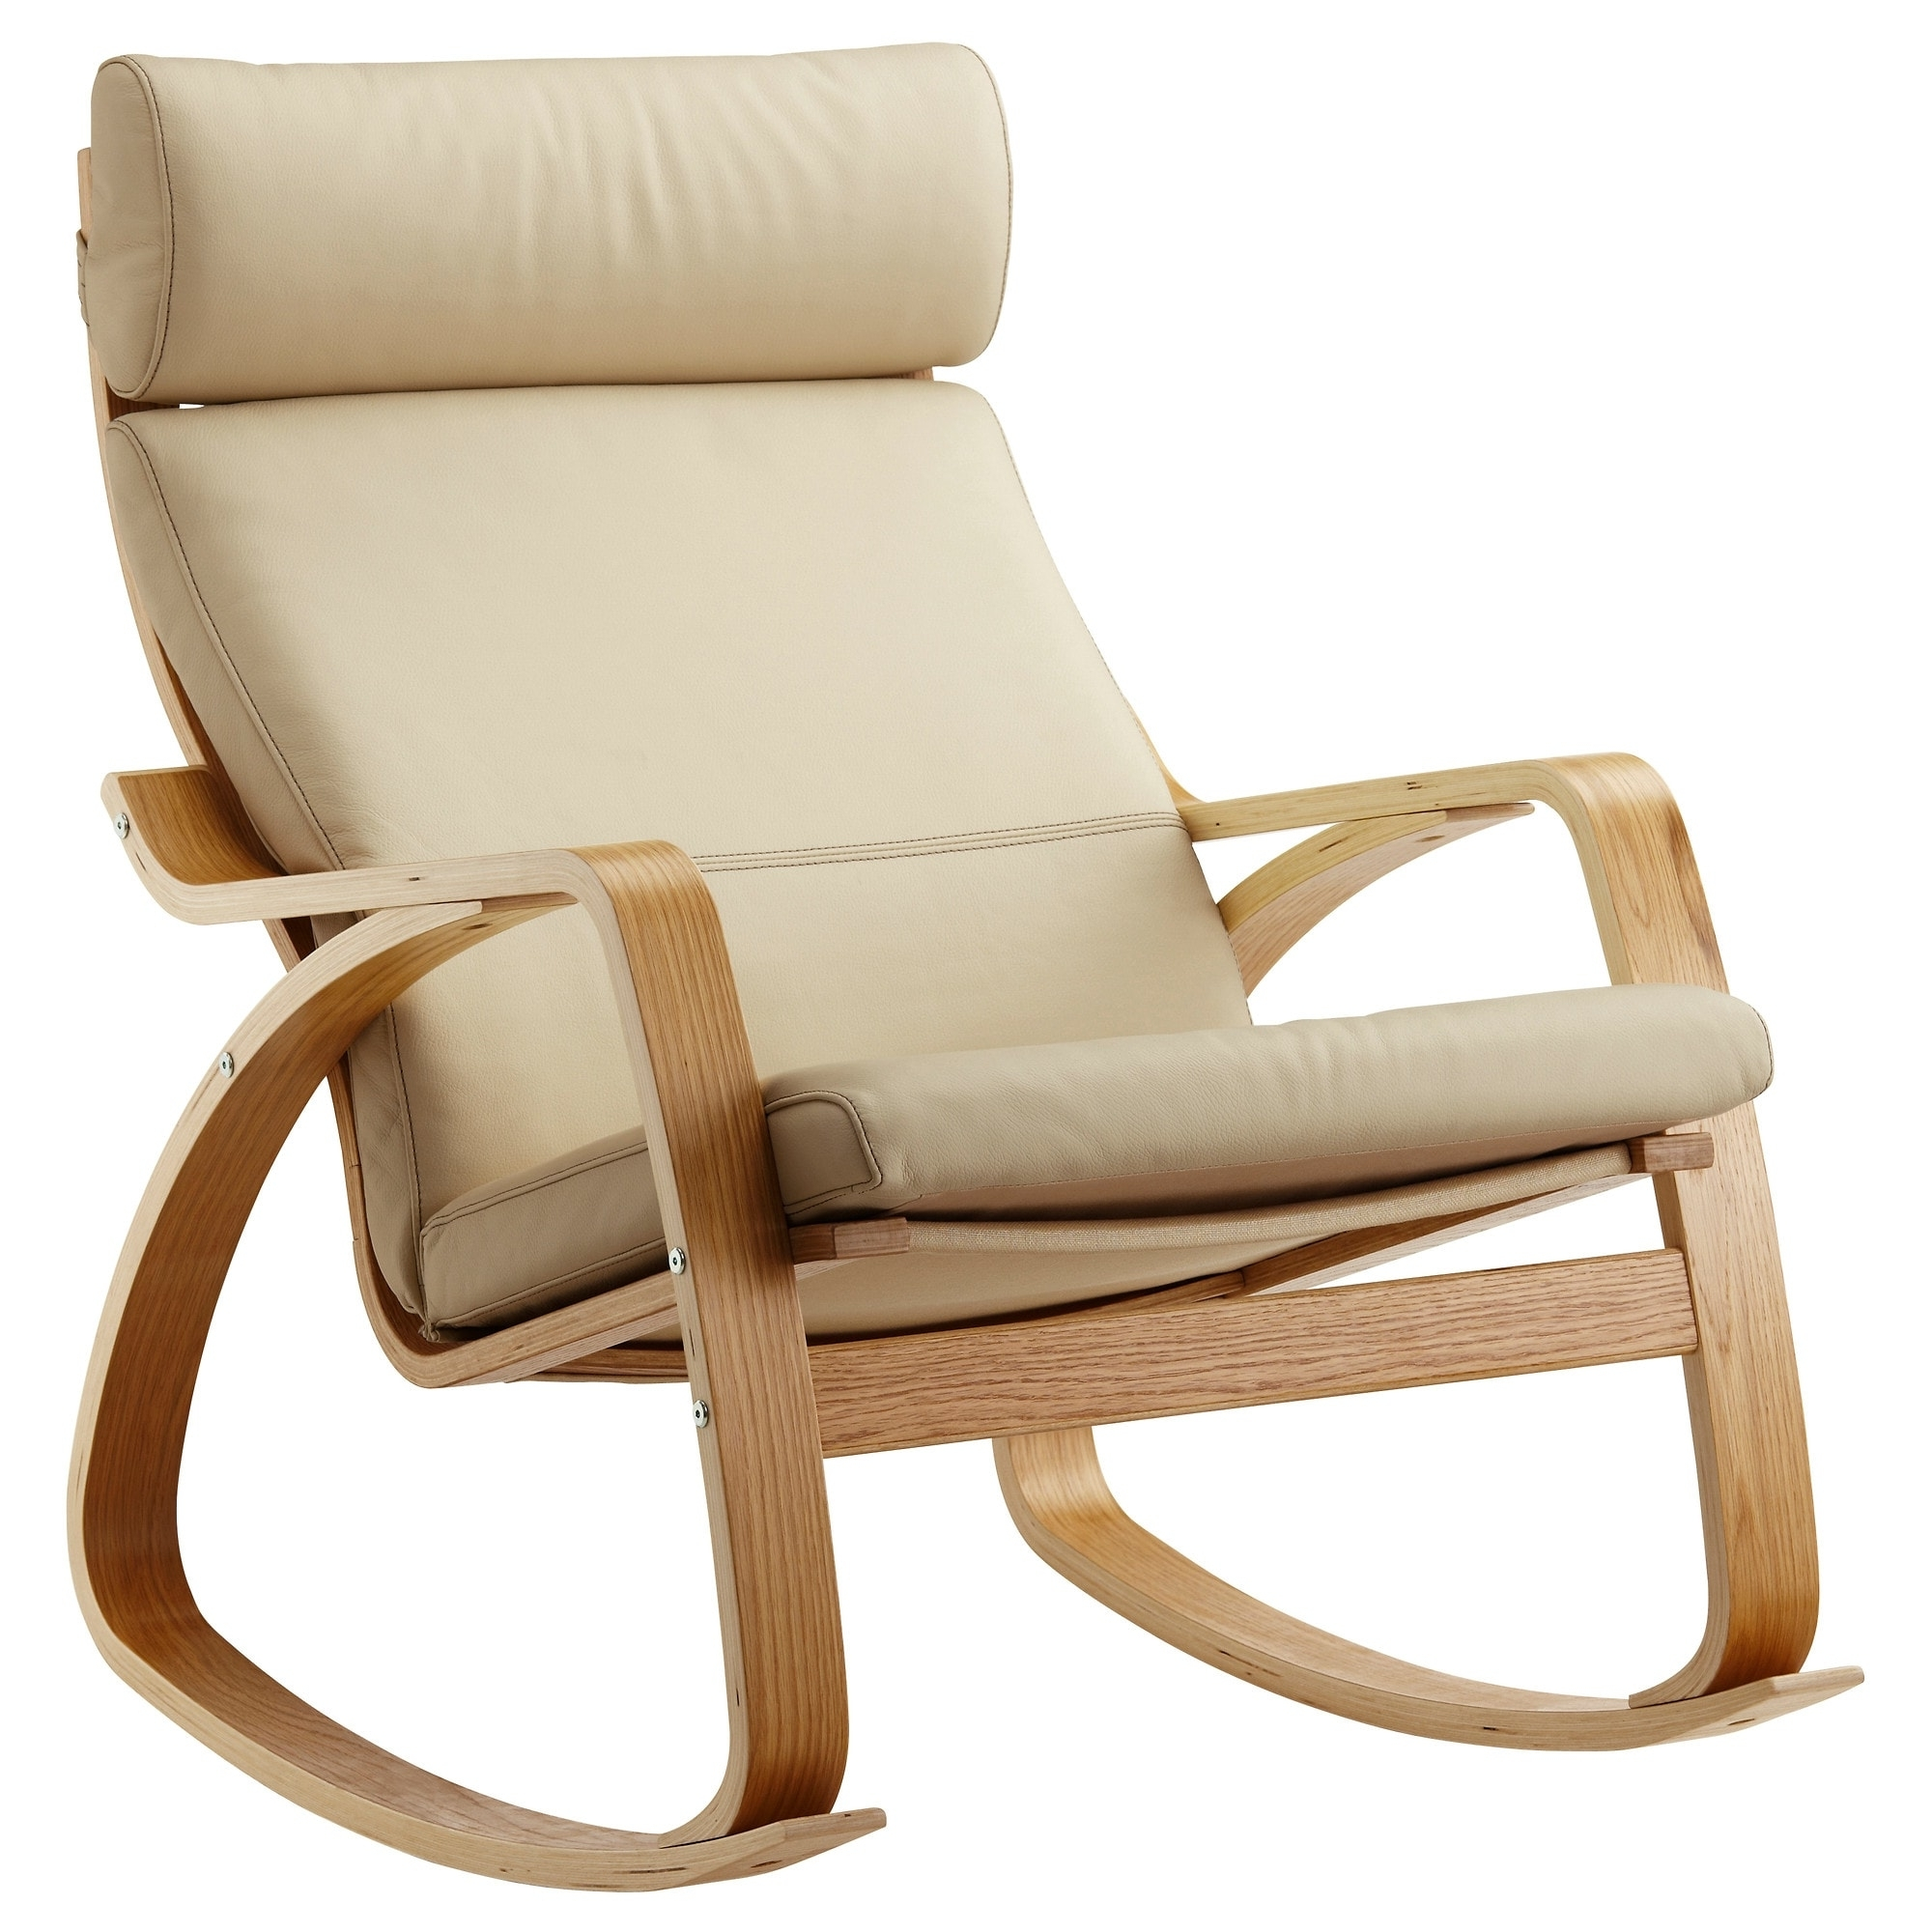 Best And Newest Poäng Rocking Chair Oak Veneer/glose Eggshell – Ikea Intended For Ikea Rocking Chairs (View 5 of 15)